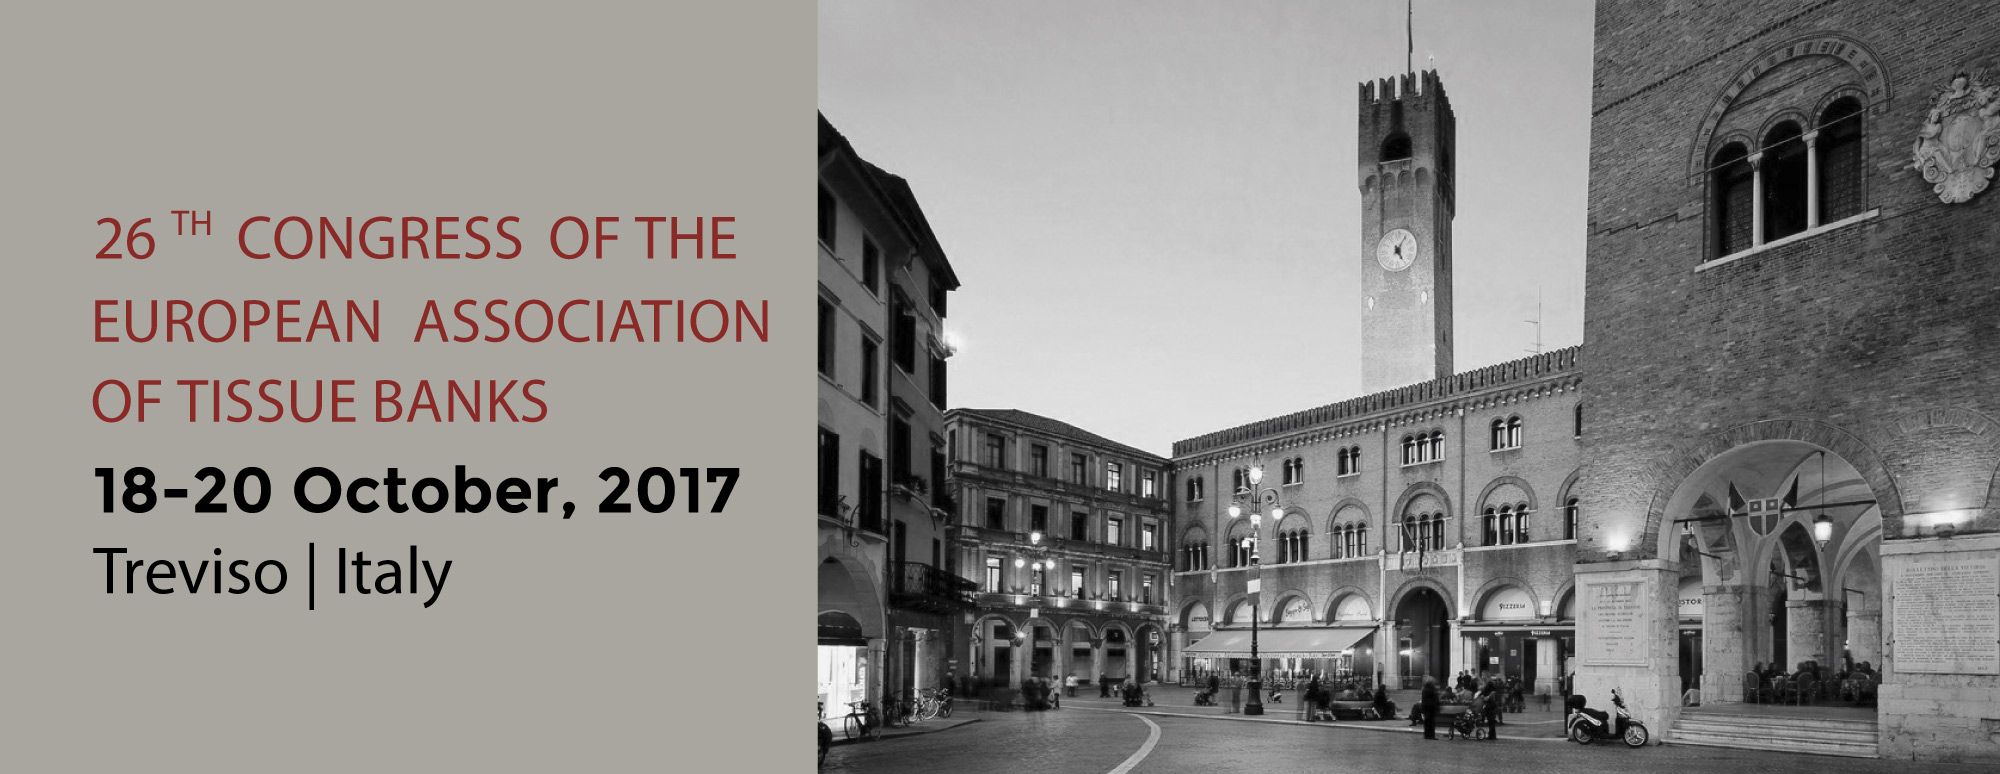 26th Congress of the European Association of Tissue Banks TREVISO